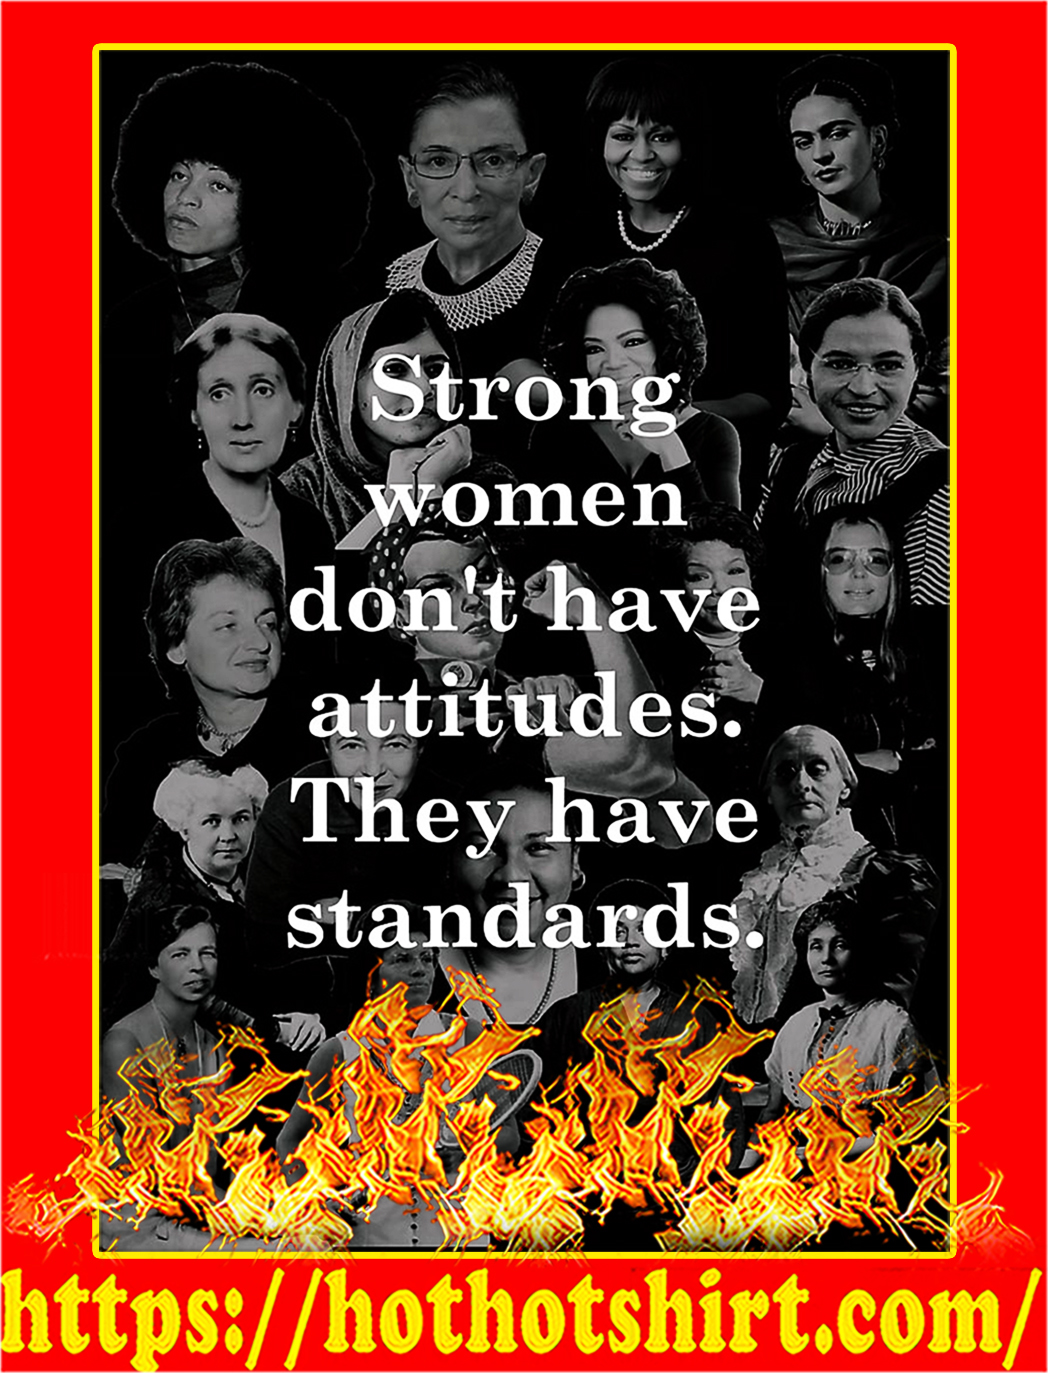 Strong women don't have attitude they have standards poster - A2